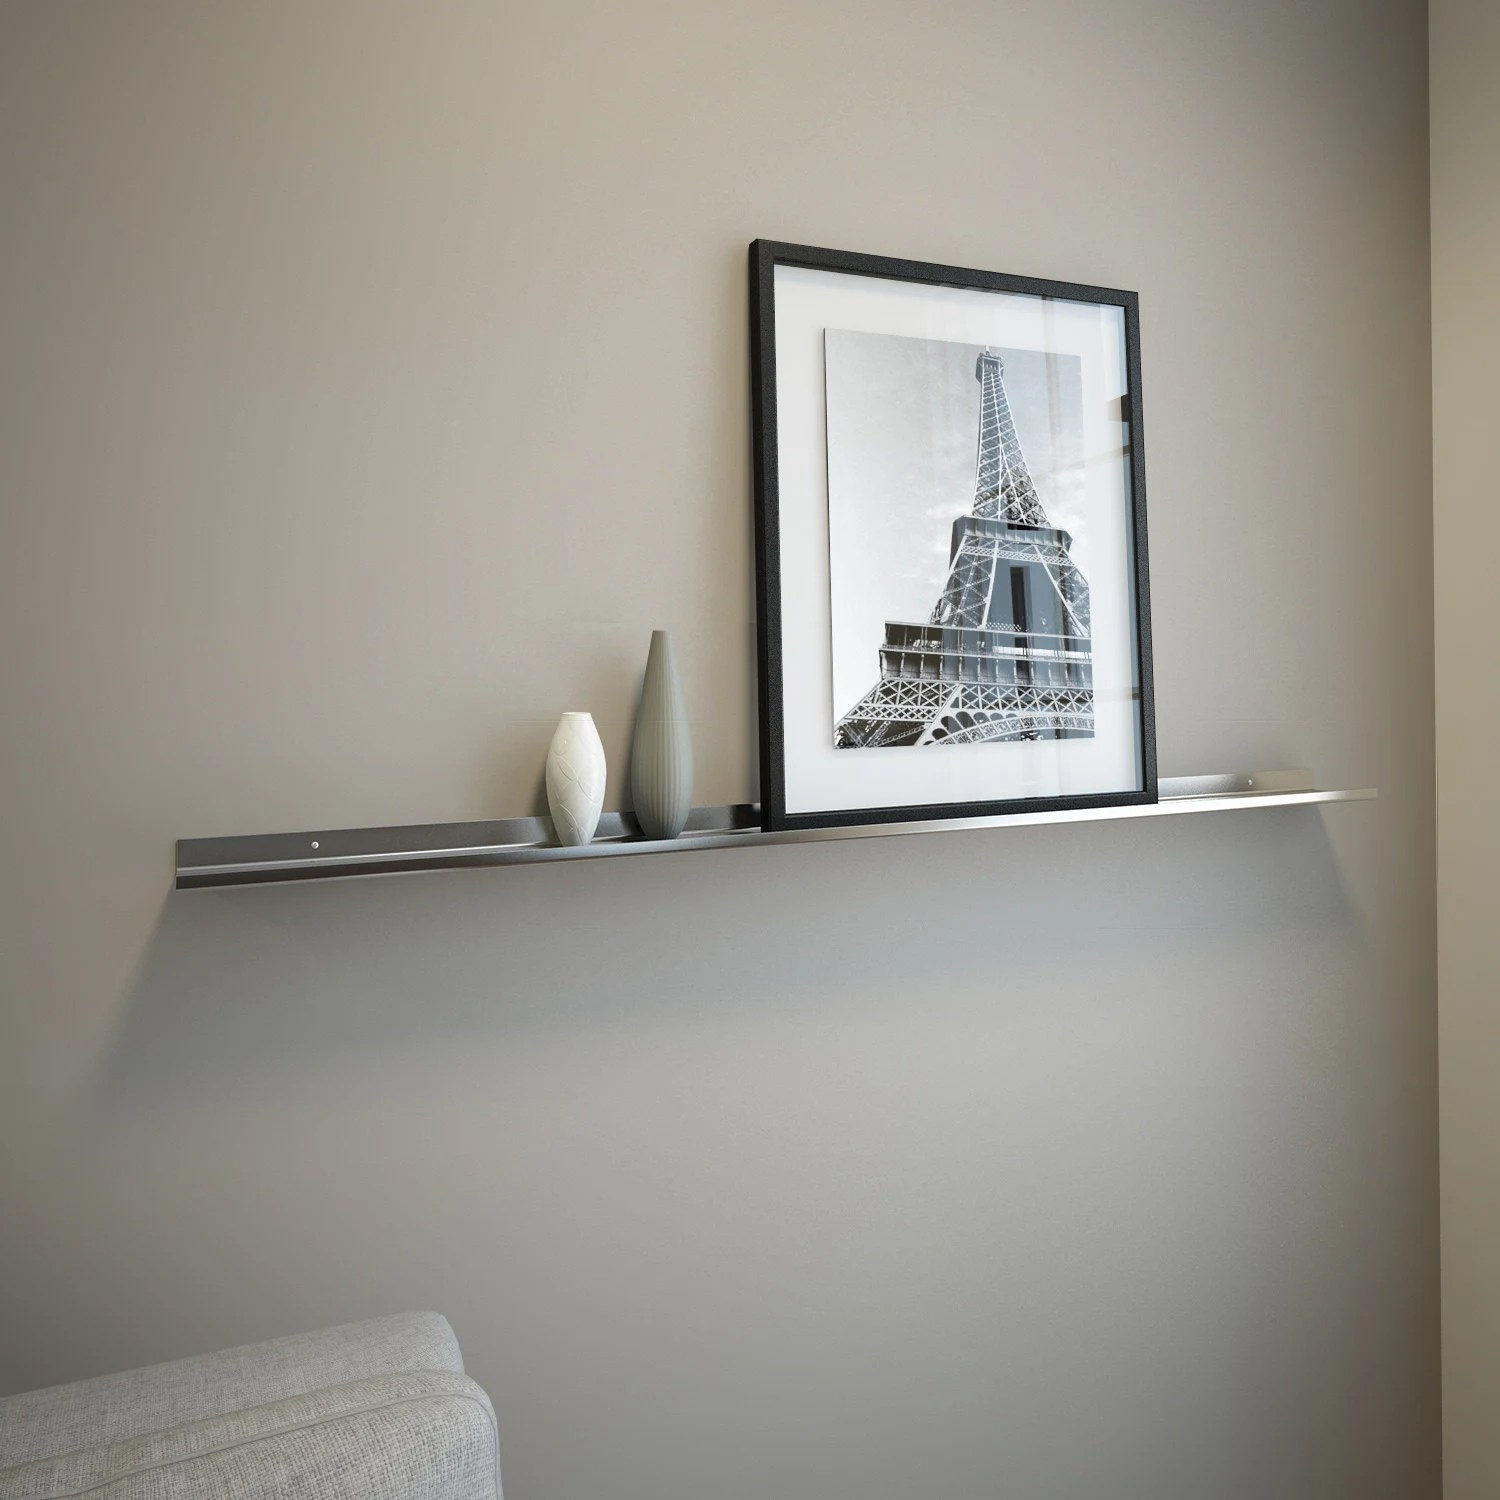 4 Ft Stainless Steel Floating Ledge For Photos And Pictures